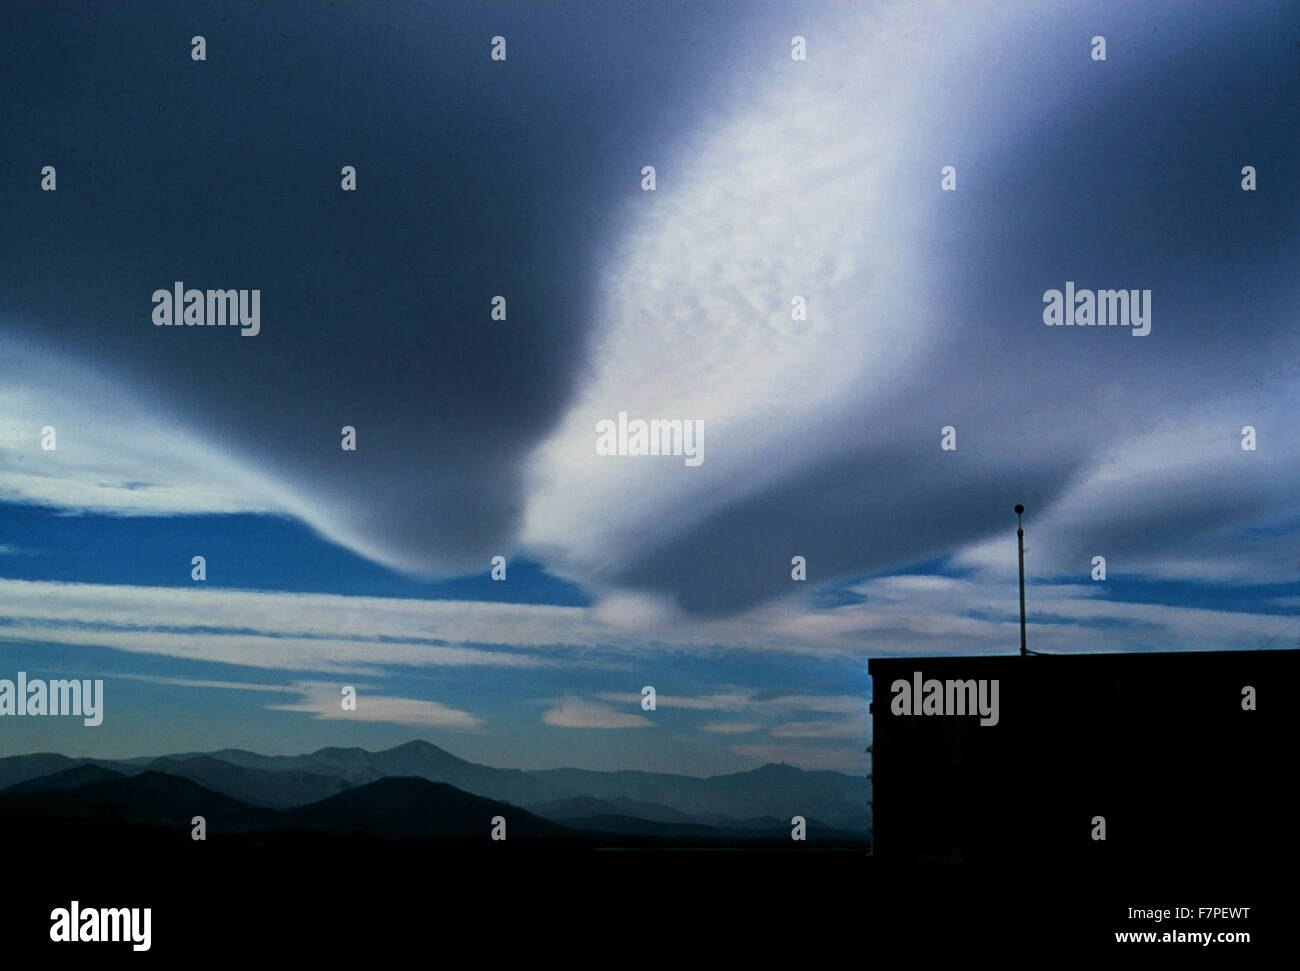 Photograph of a Elongated wave cloud a genus that belongs to the stratocumuliform physical category. Photographed - Stock Image